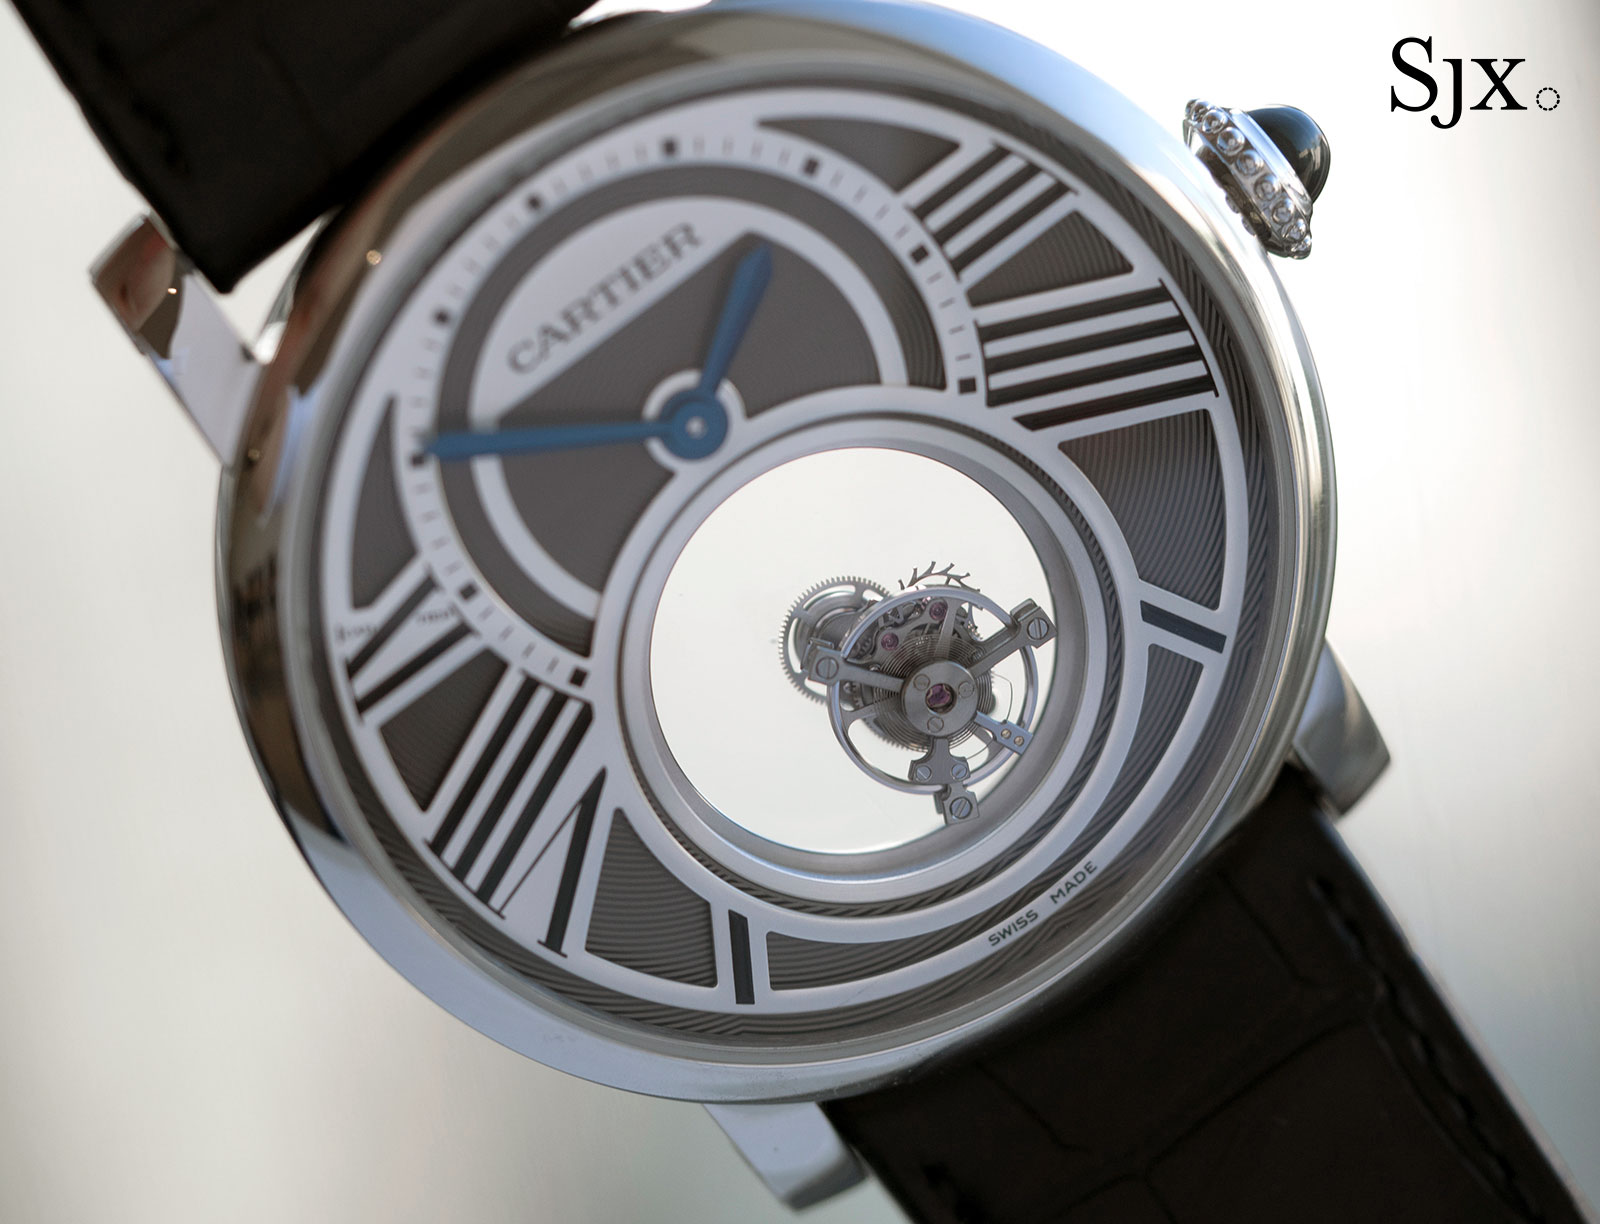 Cartier double mysterious tourbillon sothebys 3